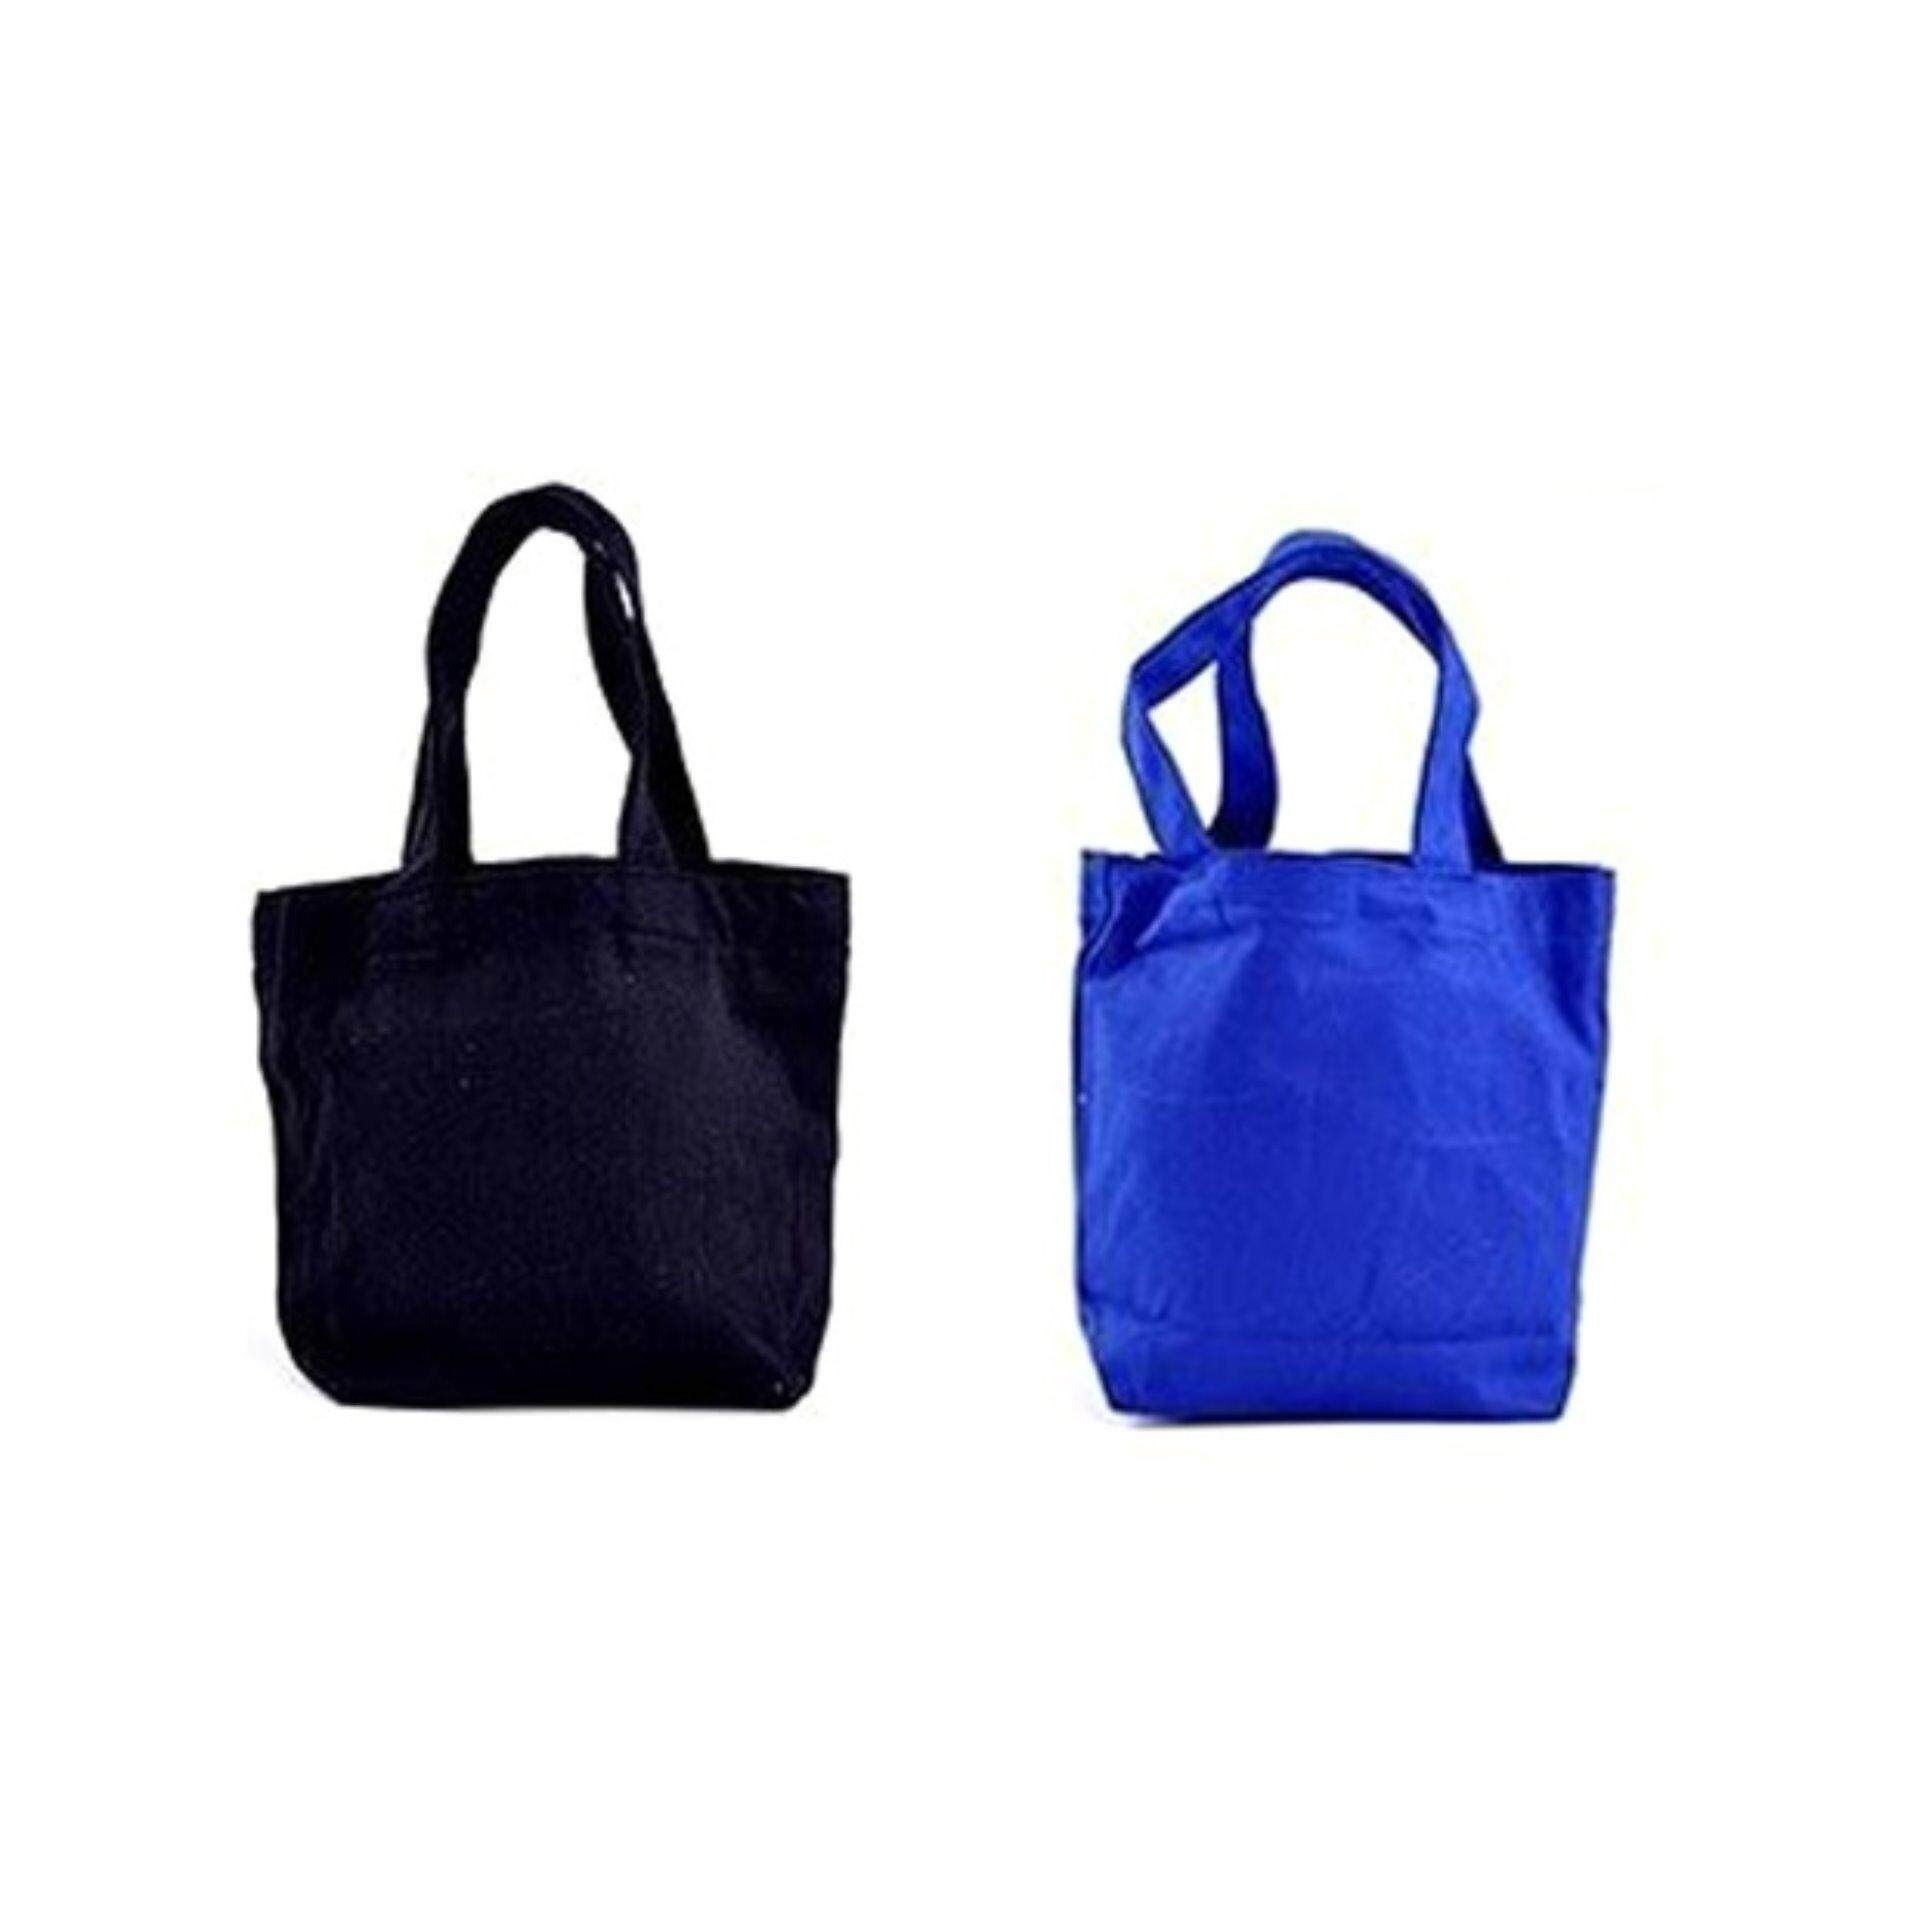 CLEARANCE SALE BELOW COST- Thick Canvas Tote Bag - Random colors + free  shipping a9d78e01f54d5